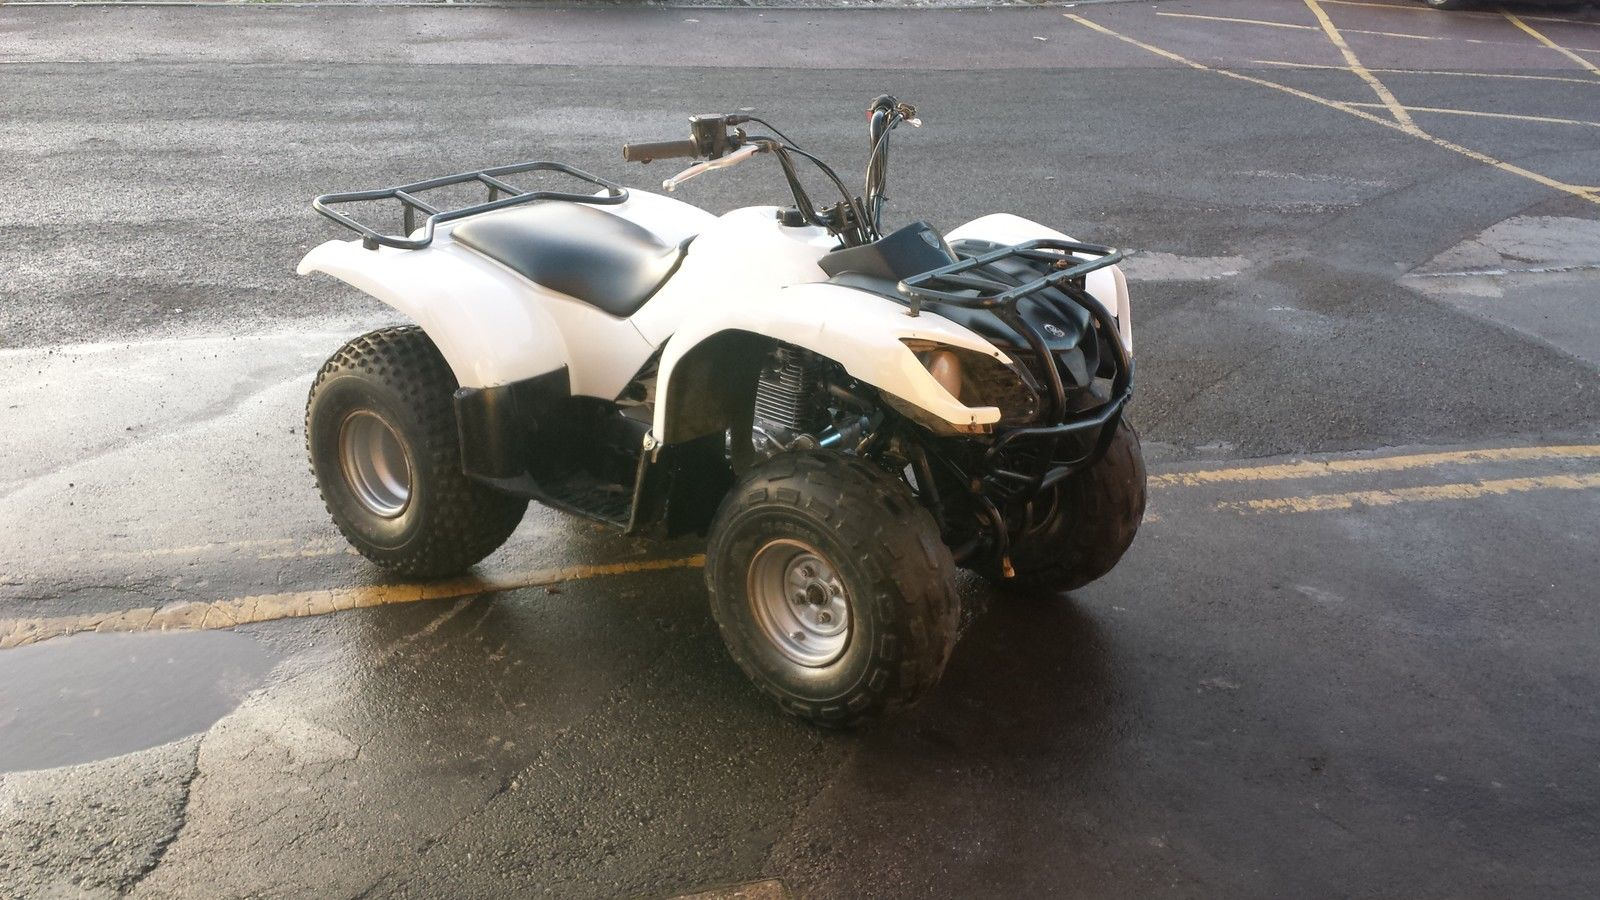 yamaha grizzly 125 farm quad great fun offroad. Black Bedroom Furniture Sets. Home Design Ideas